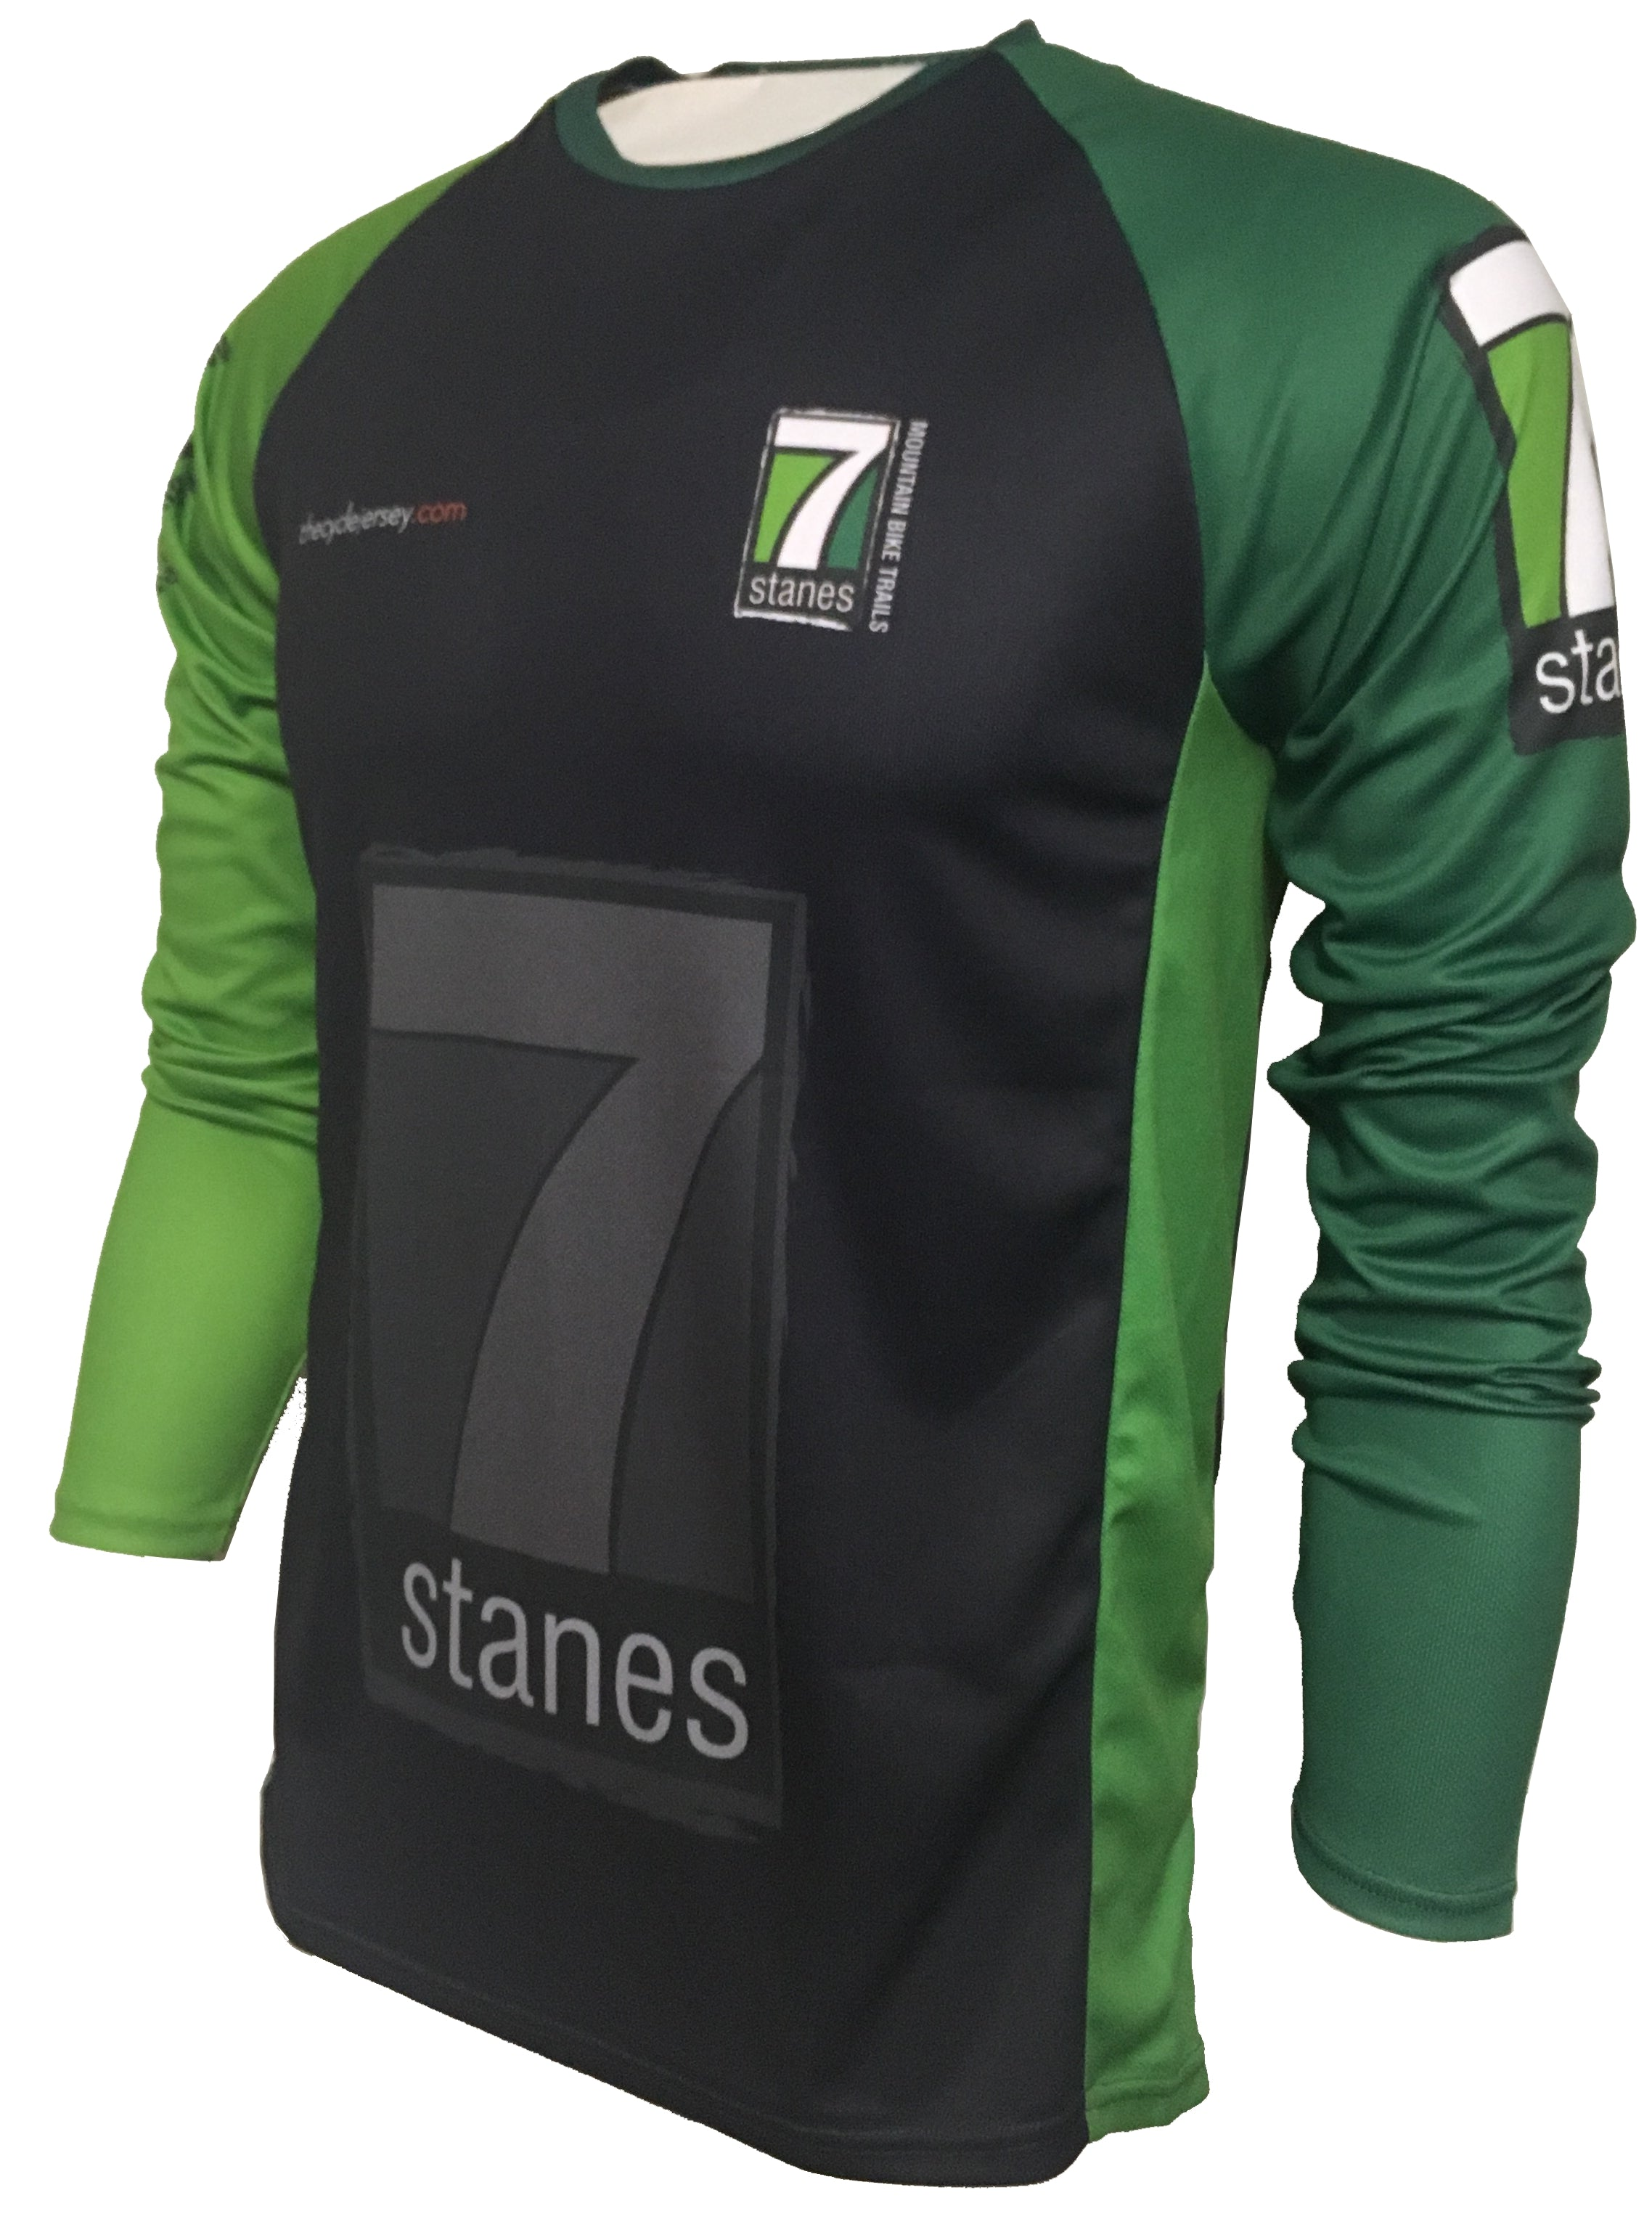 7stanes Enduro Cycling Jersey Front